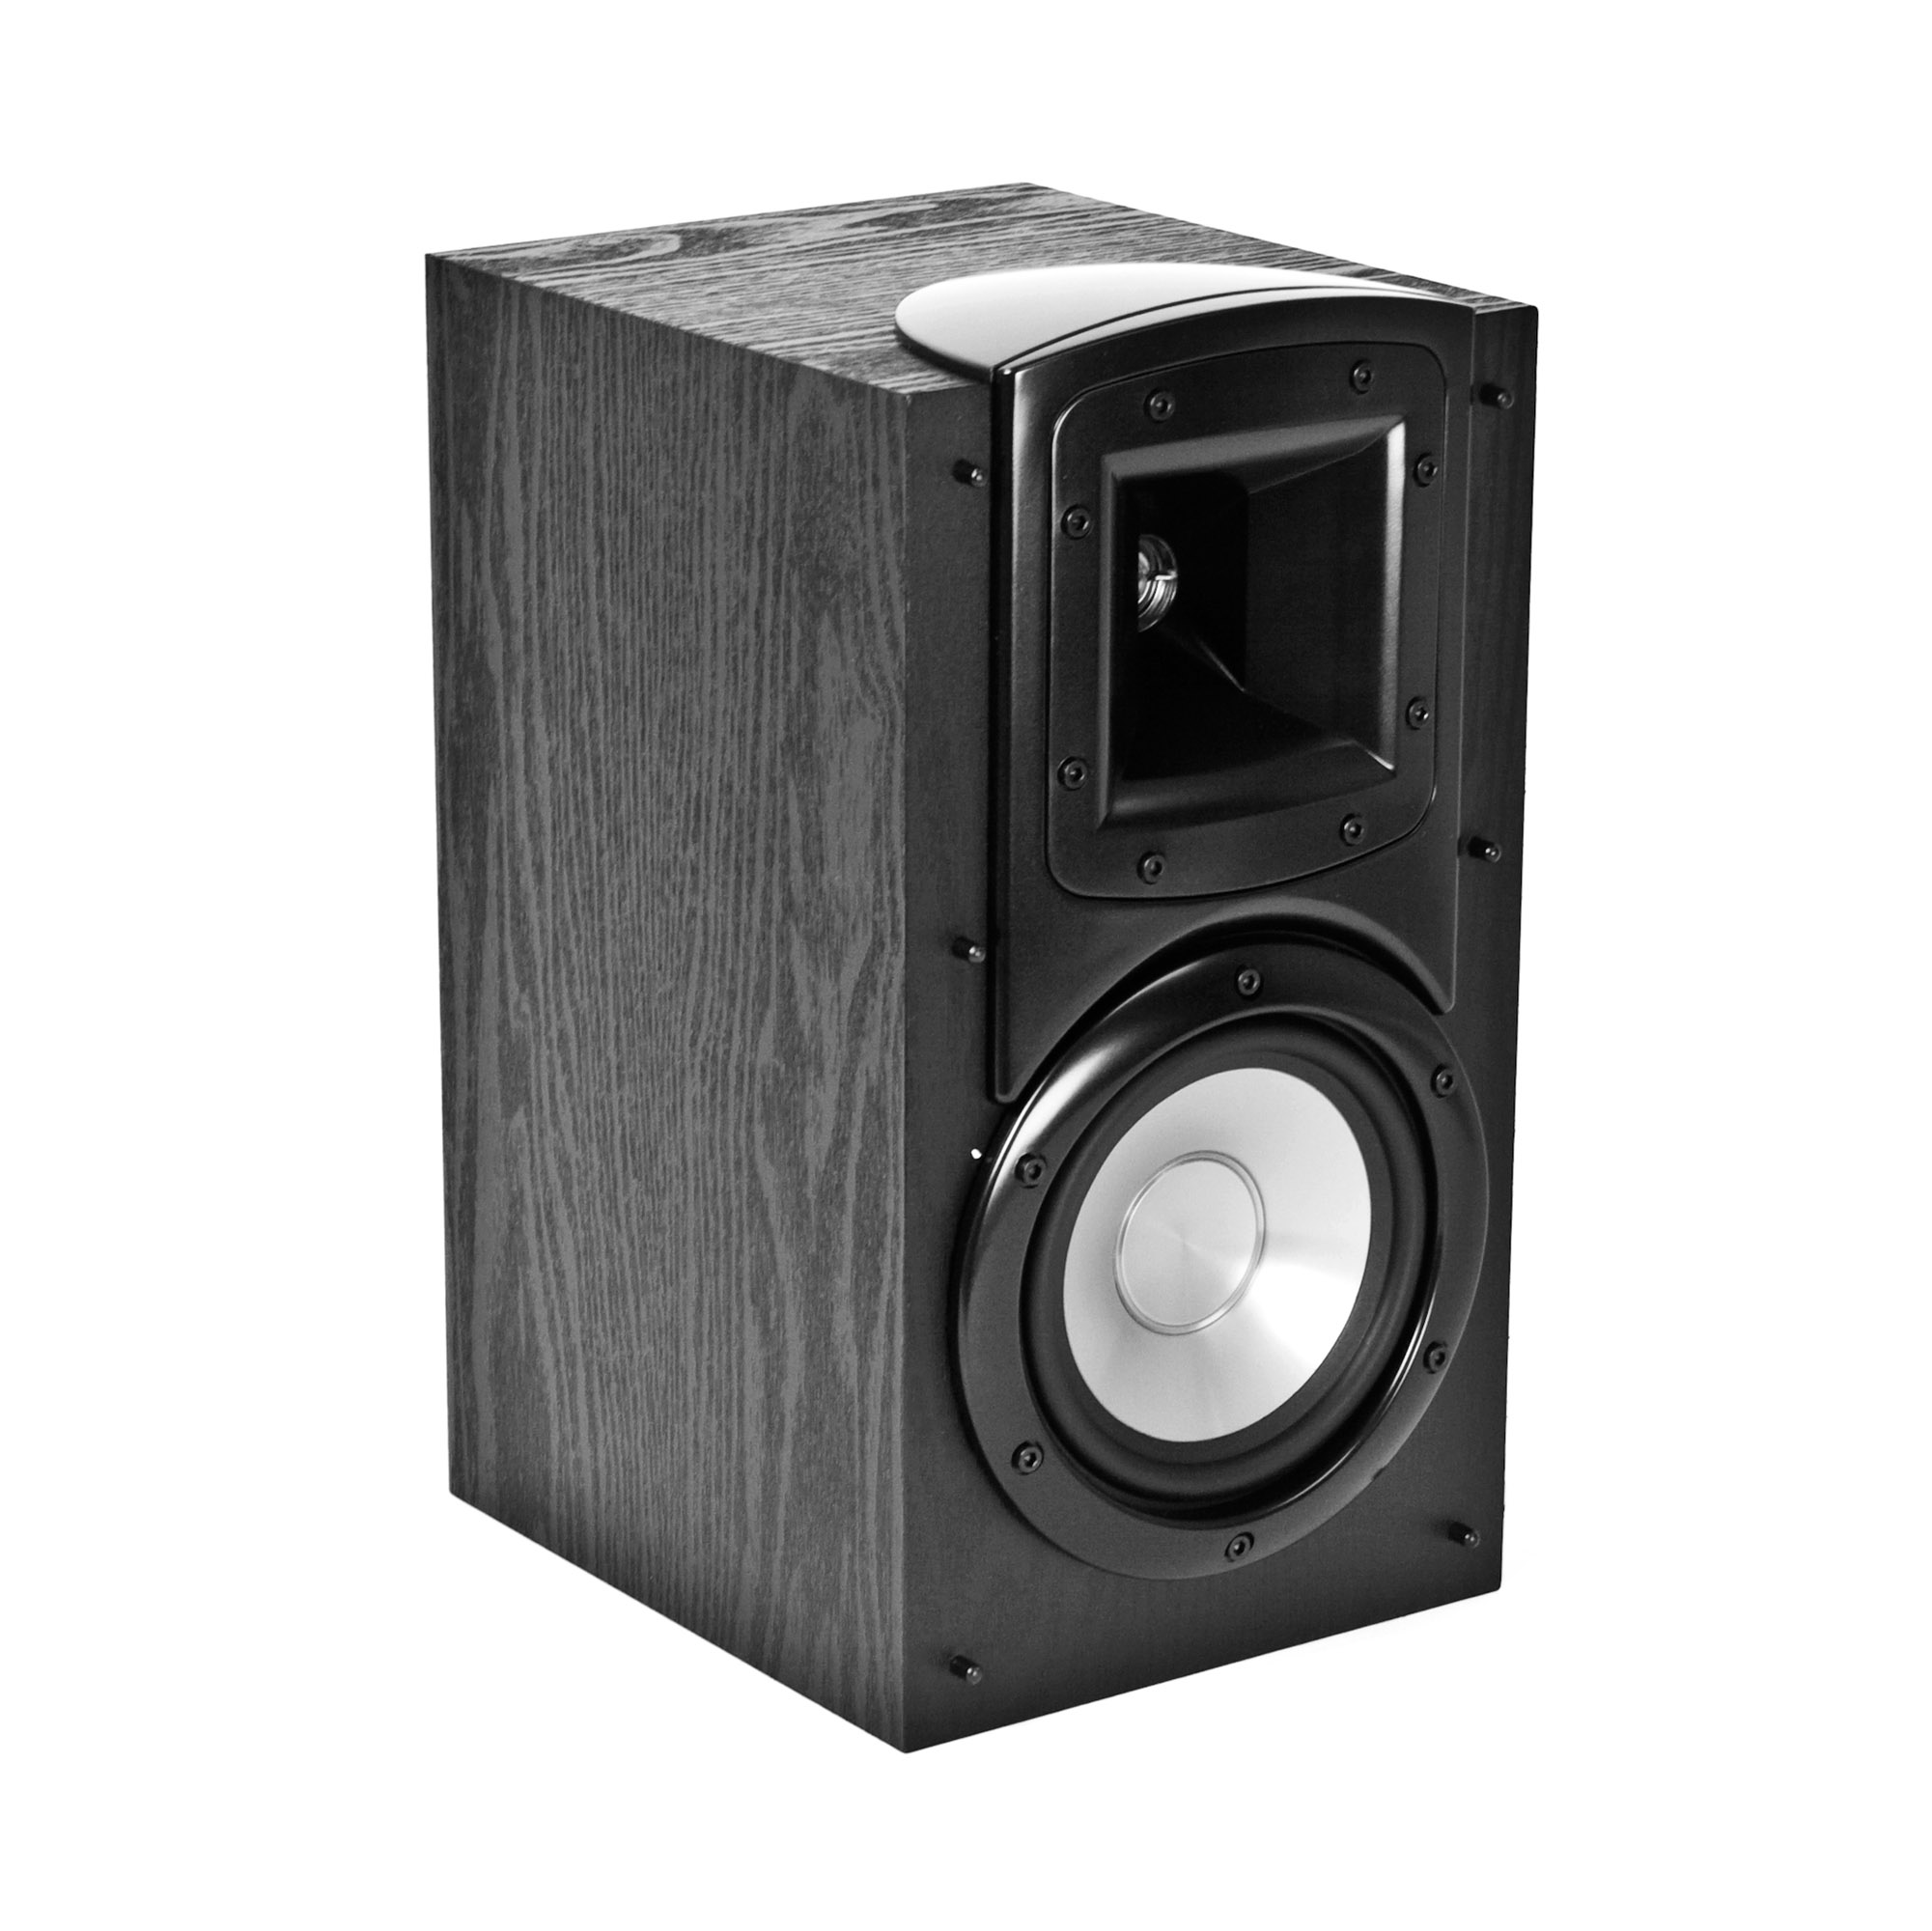 Klipsch Speakers Klipsch Adds New Models To Its Synergy Series Speakers